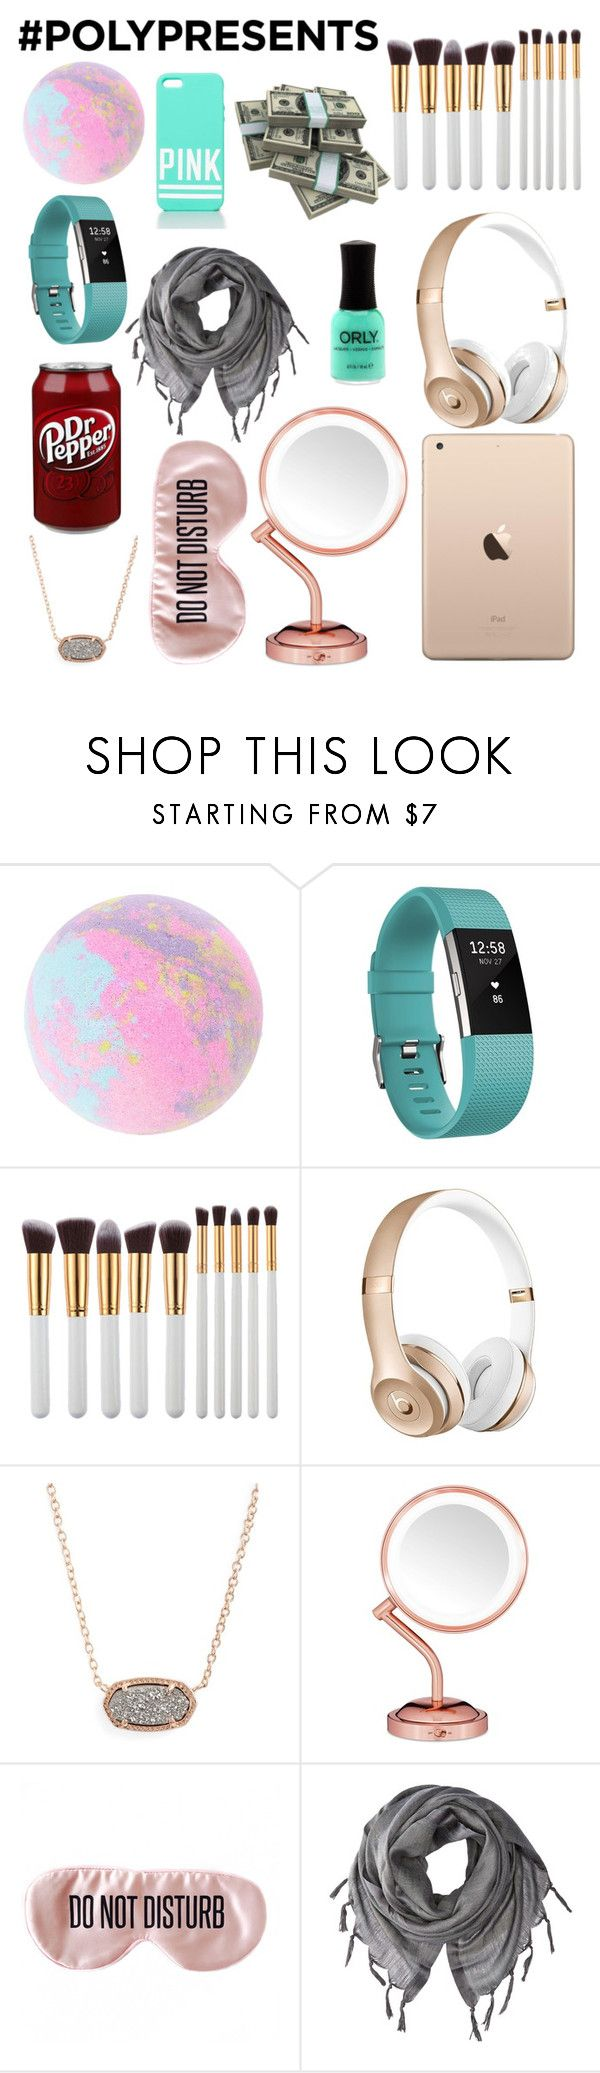 """#PolyPresents: Wish List"" by tealgoldpineapple ❤ liked on Polyvore featuring Fitbit, My Makeup Brush Set, Kendra Scott, Victoria's Secret, Conair, BaubleBar, Love Quotes Scarves, contestentry and polyPresents"